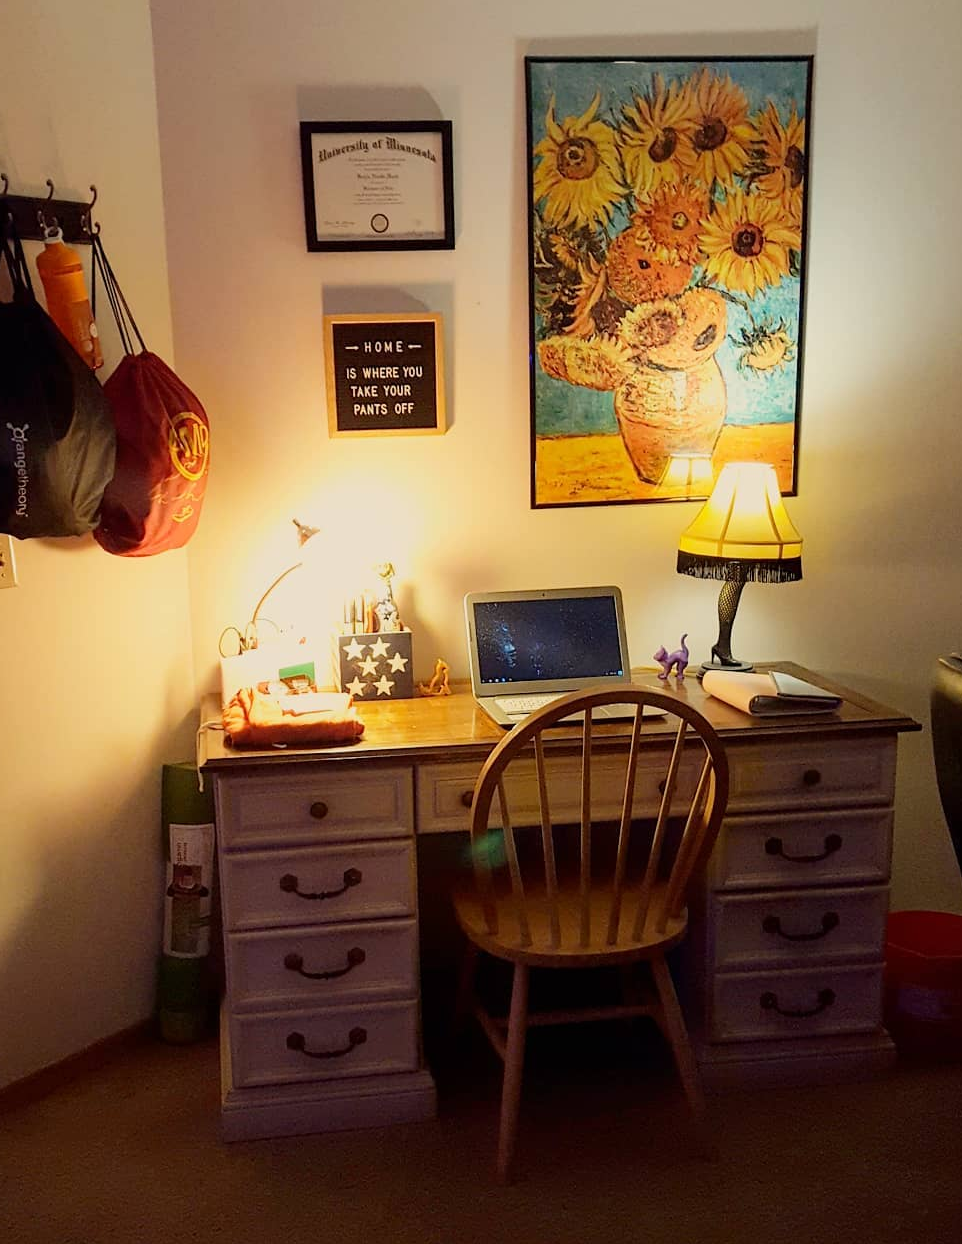 Kayla's clean desk, well decorated and lit.